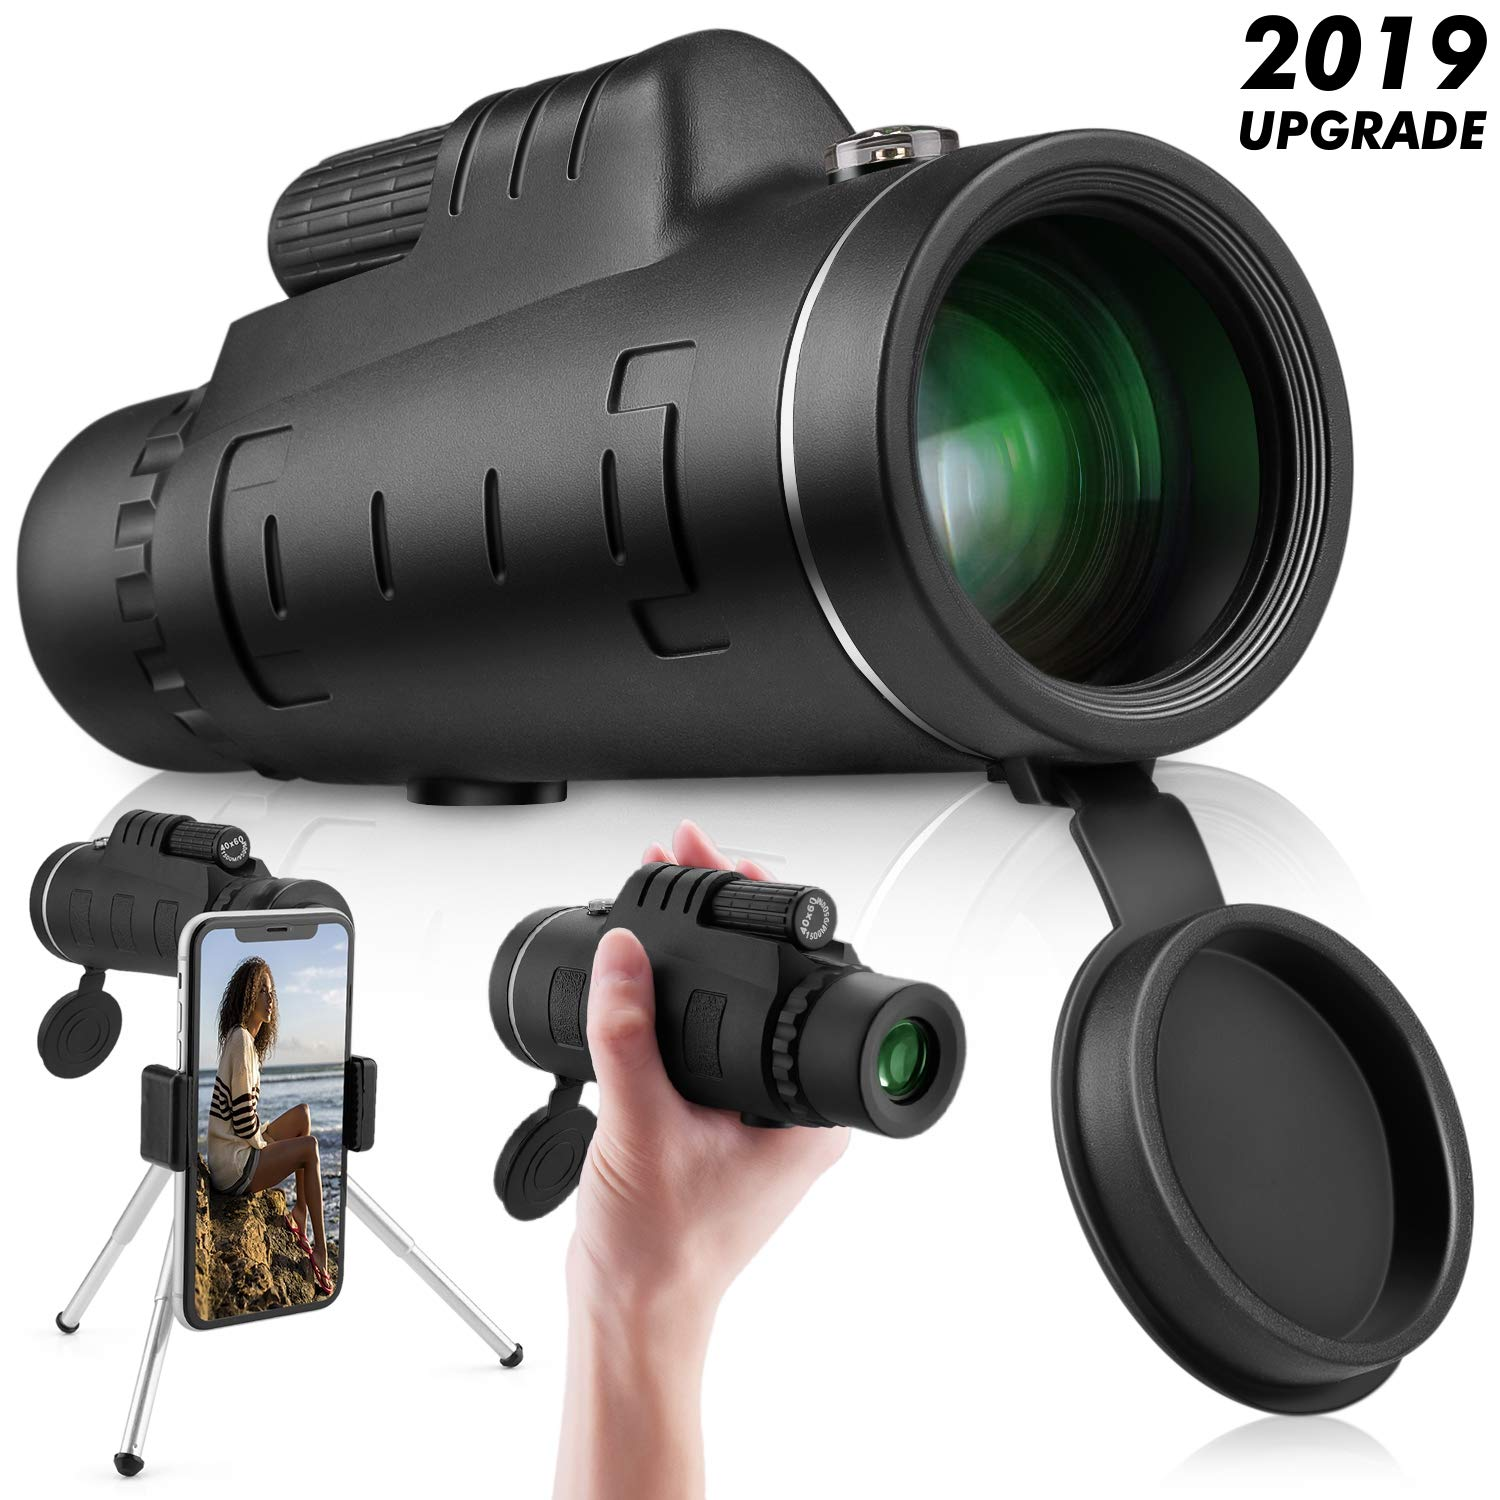 Monocular Telescope High Power 40x60 - Ce Optics High Powered Bak4 45 Degree Angled Eyepiece Telescope with Smartphone Tripod and Mount Adapter for Target Shooting, Birdwatching, Wildlife Scenery